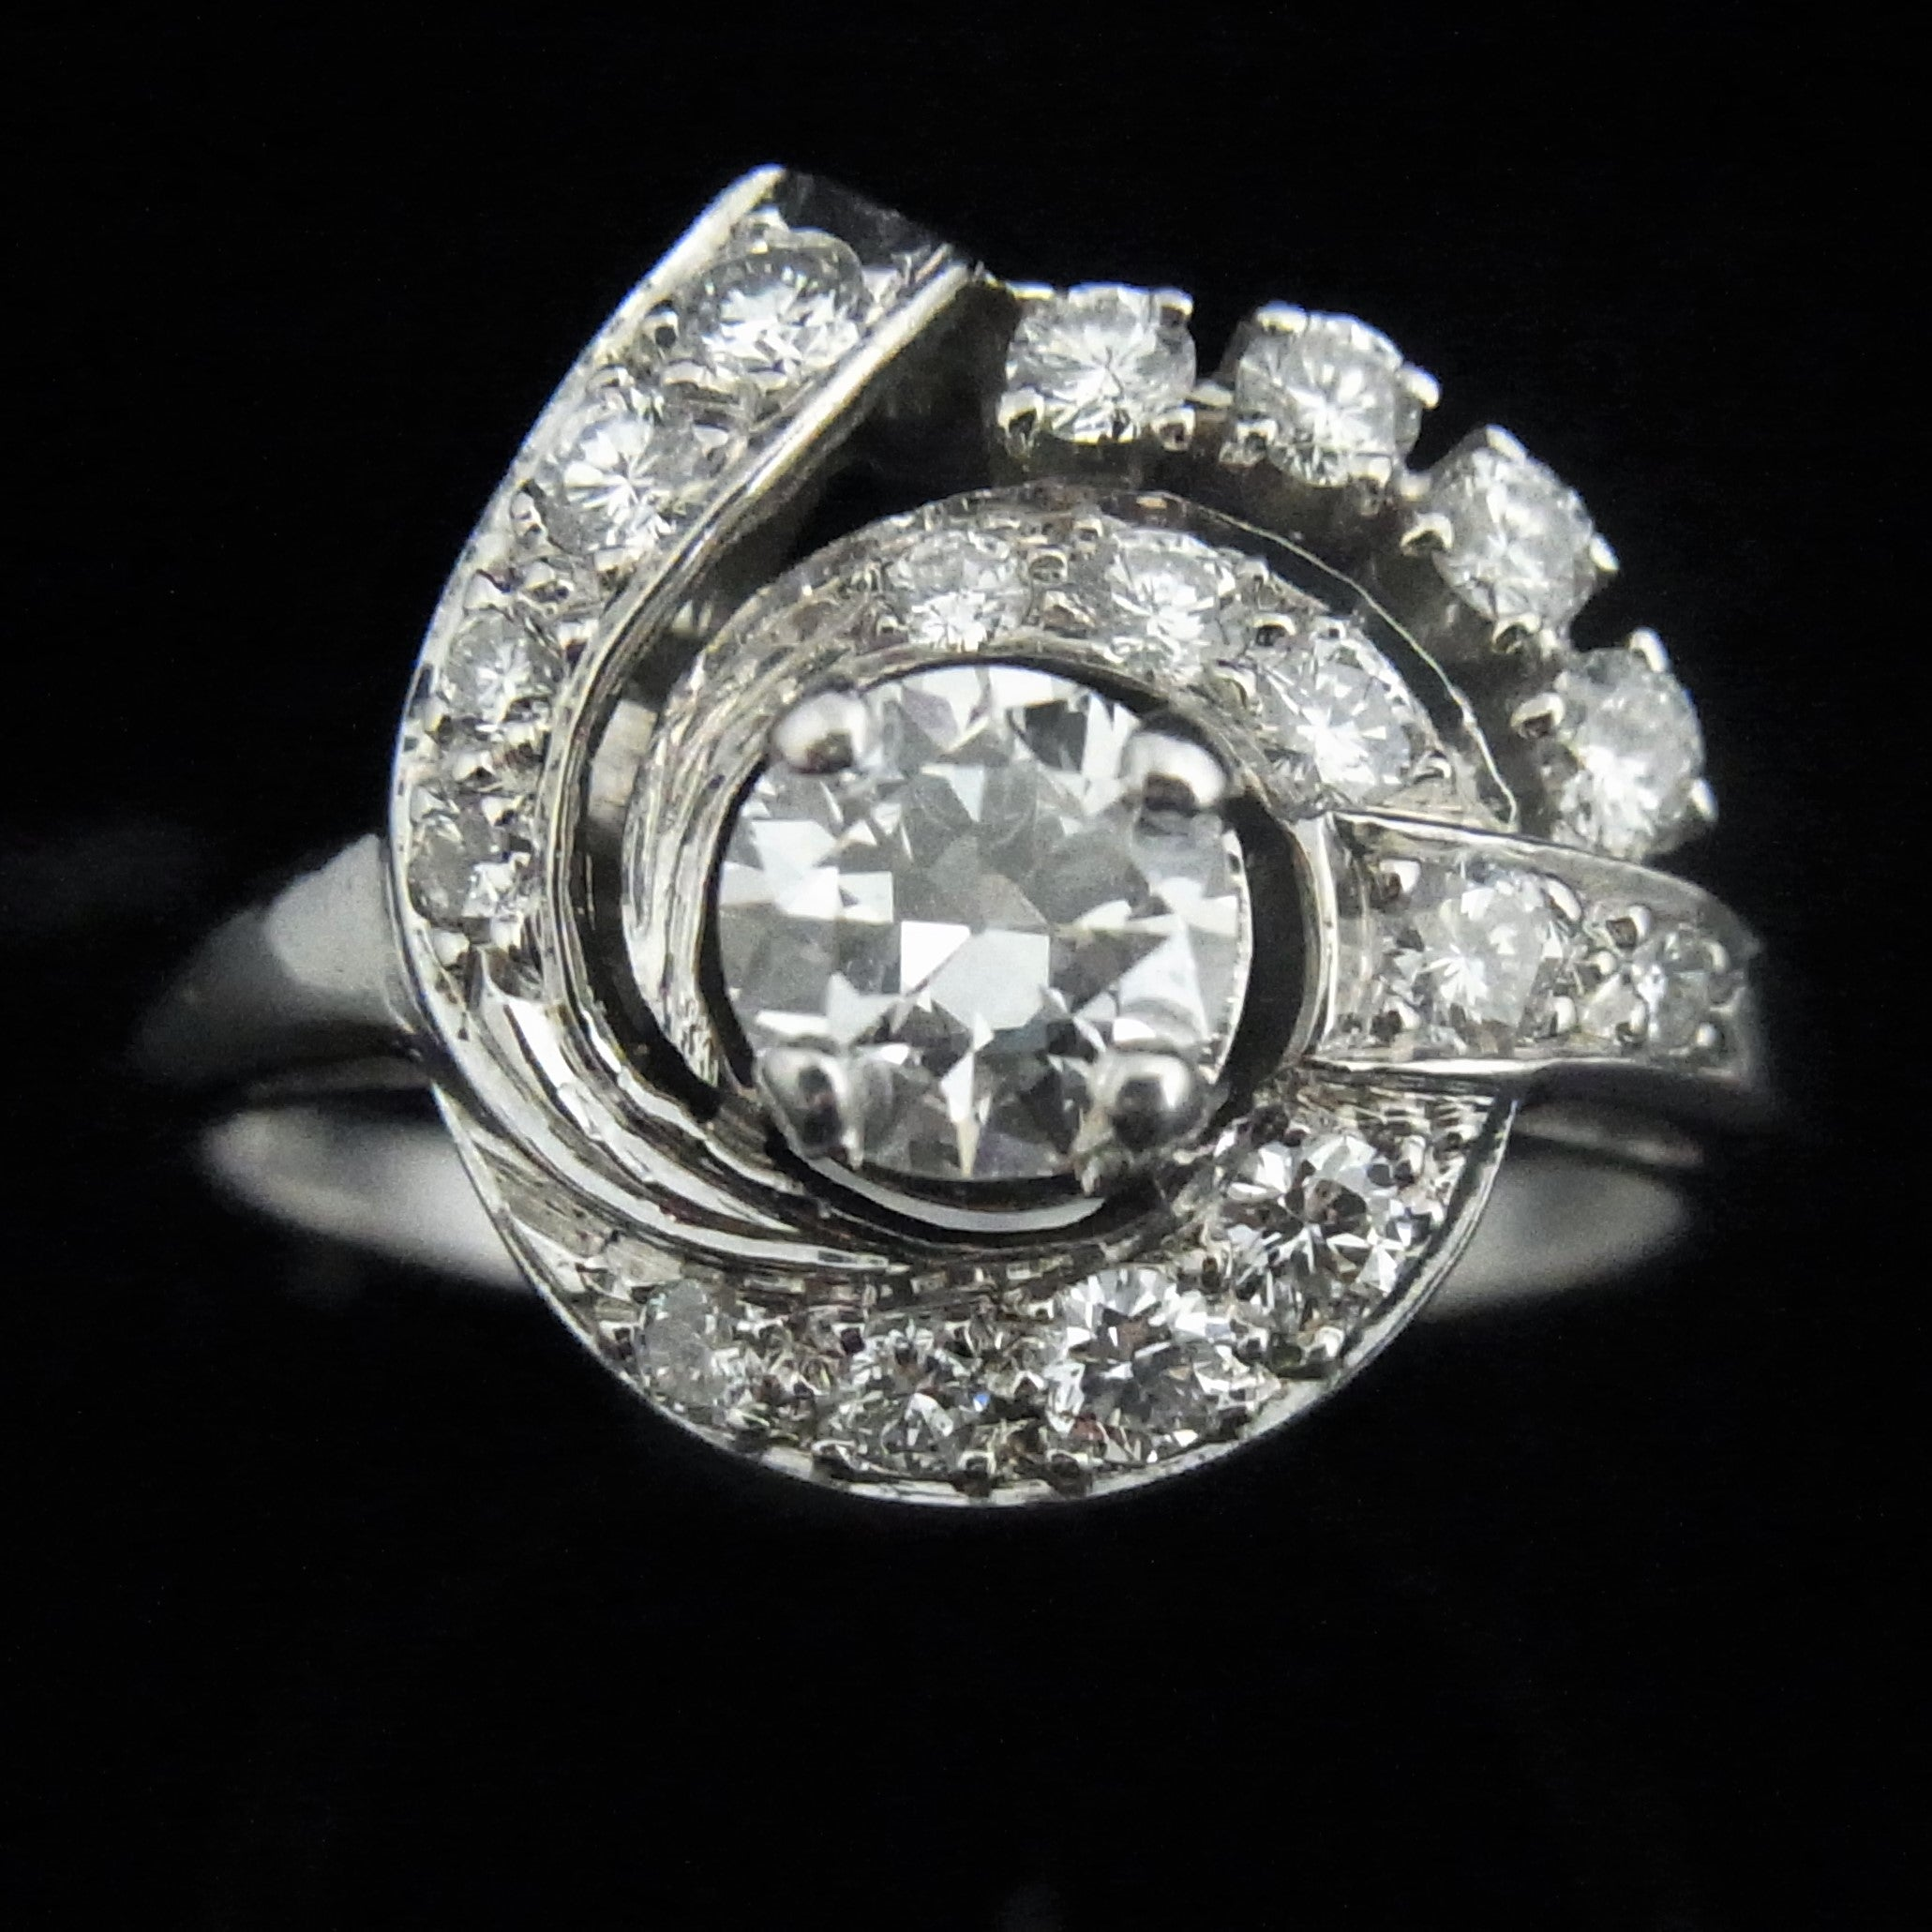 diamond media engagement platinum wedding gia ring estate emerald cut